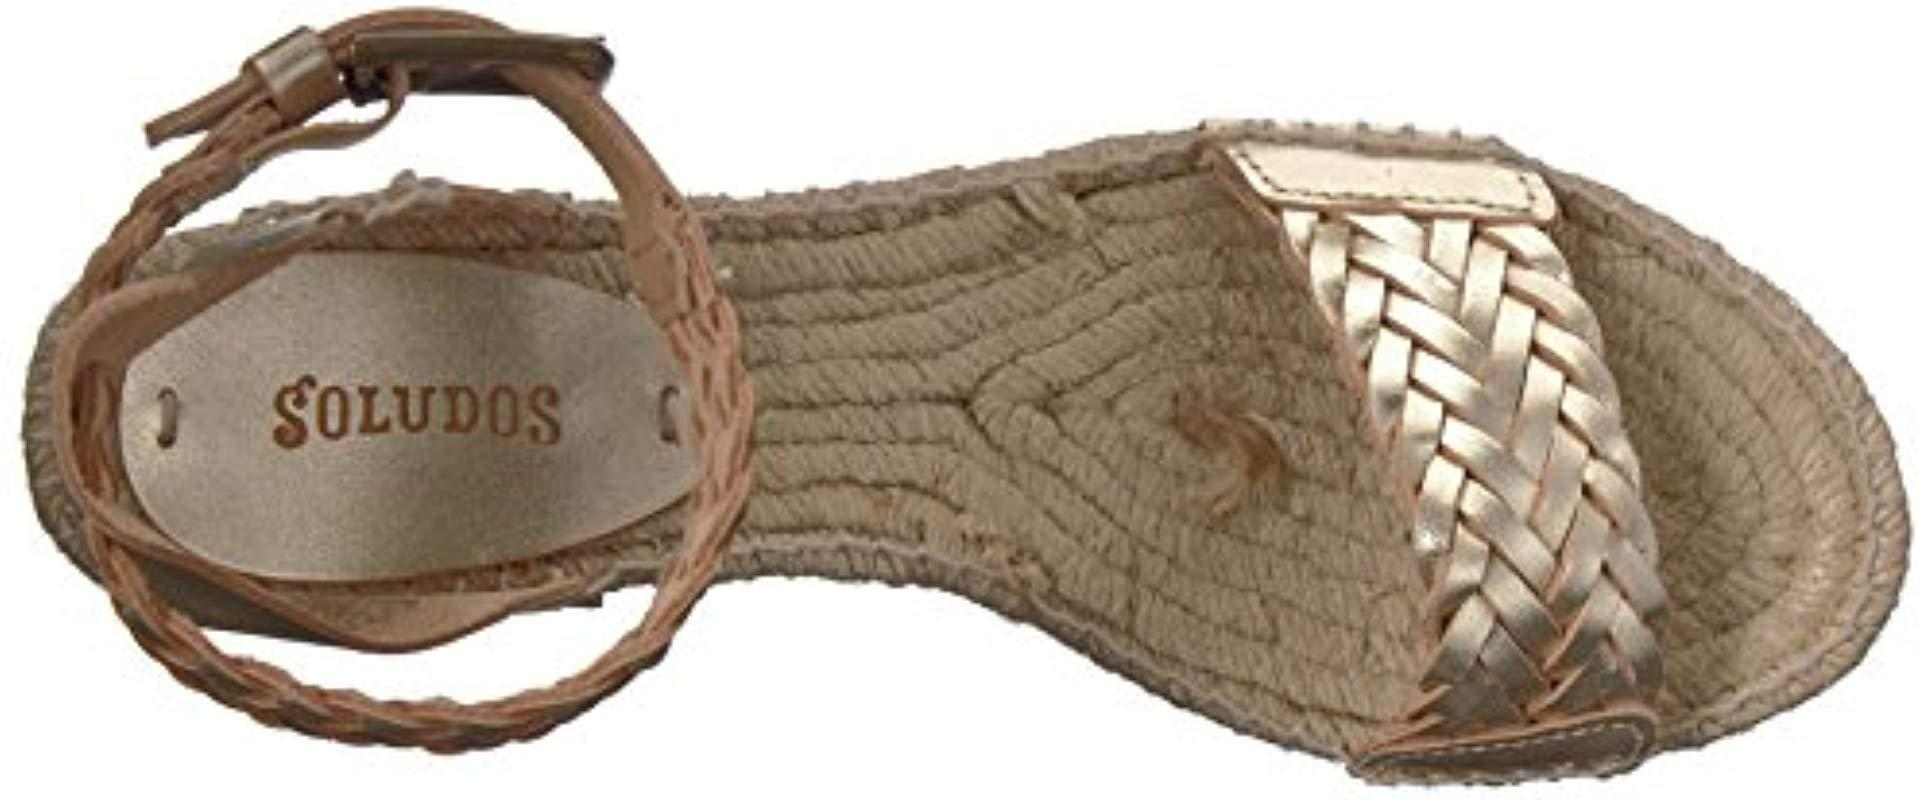 b1a92a33927 Lyst - Soludos Woven Demi Wedge Open Toe Sandal Espadrille